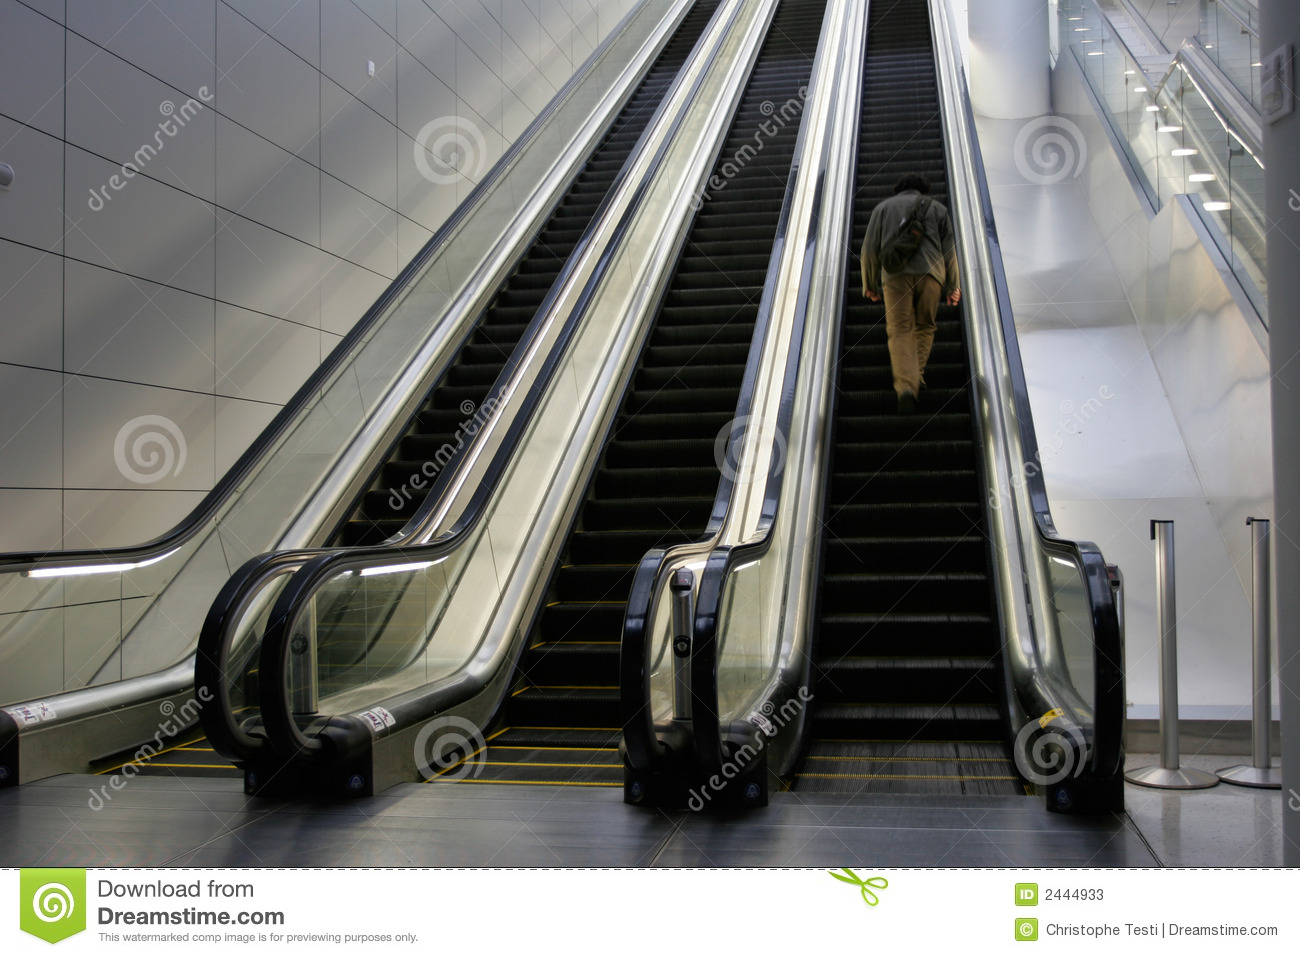 managerial escalator Definition of escalation clause in the financial dictionary - by free online english dictionary and encyclopedia  escalator clause  management who's news.